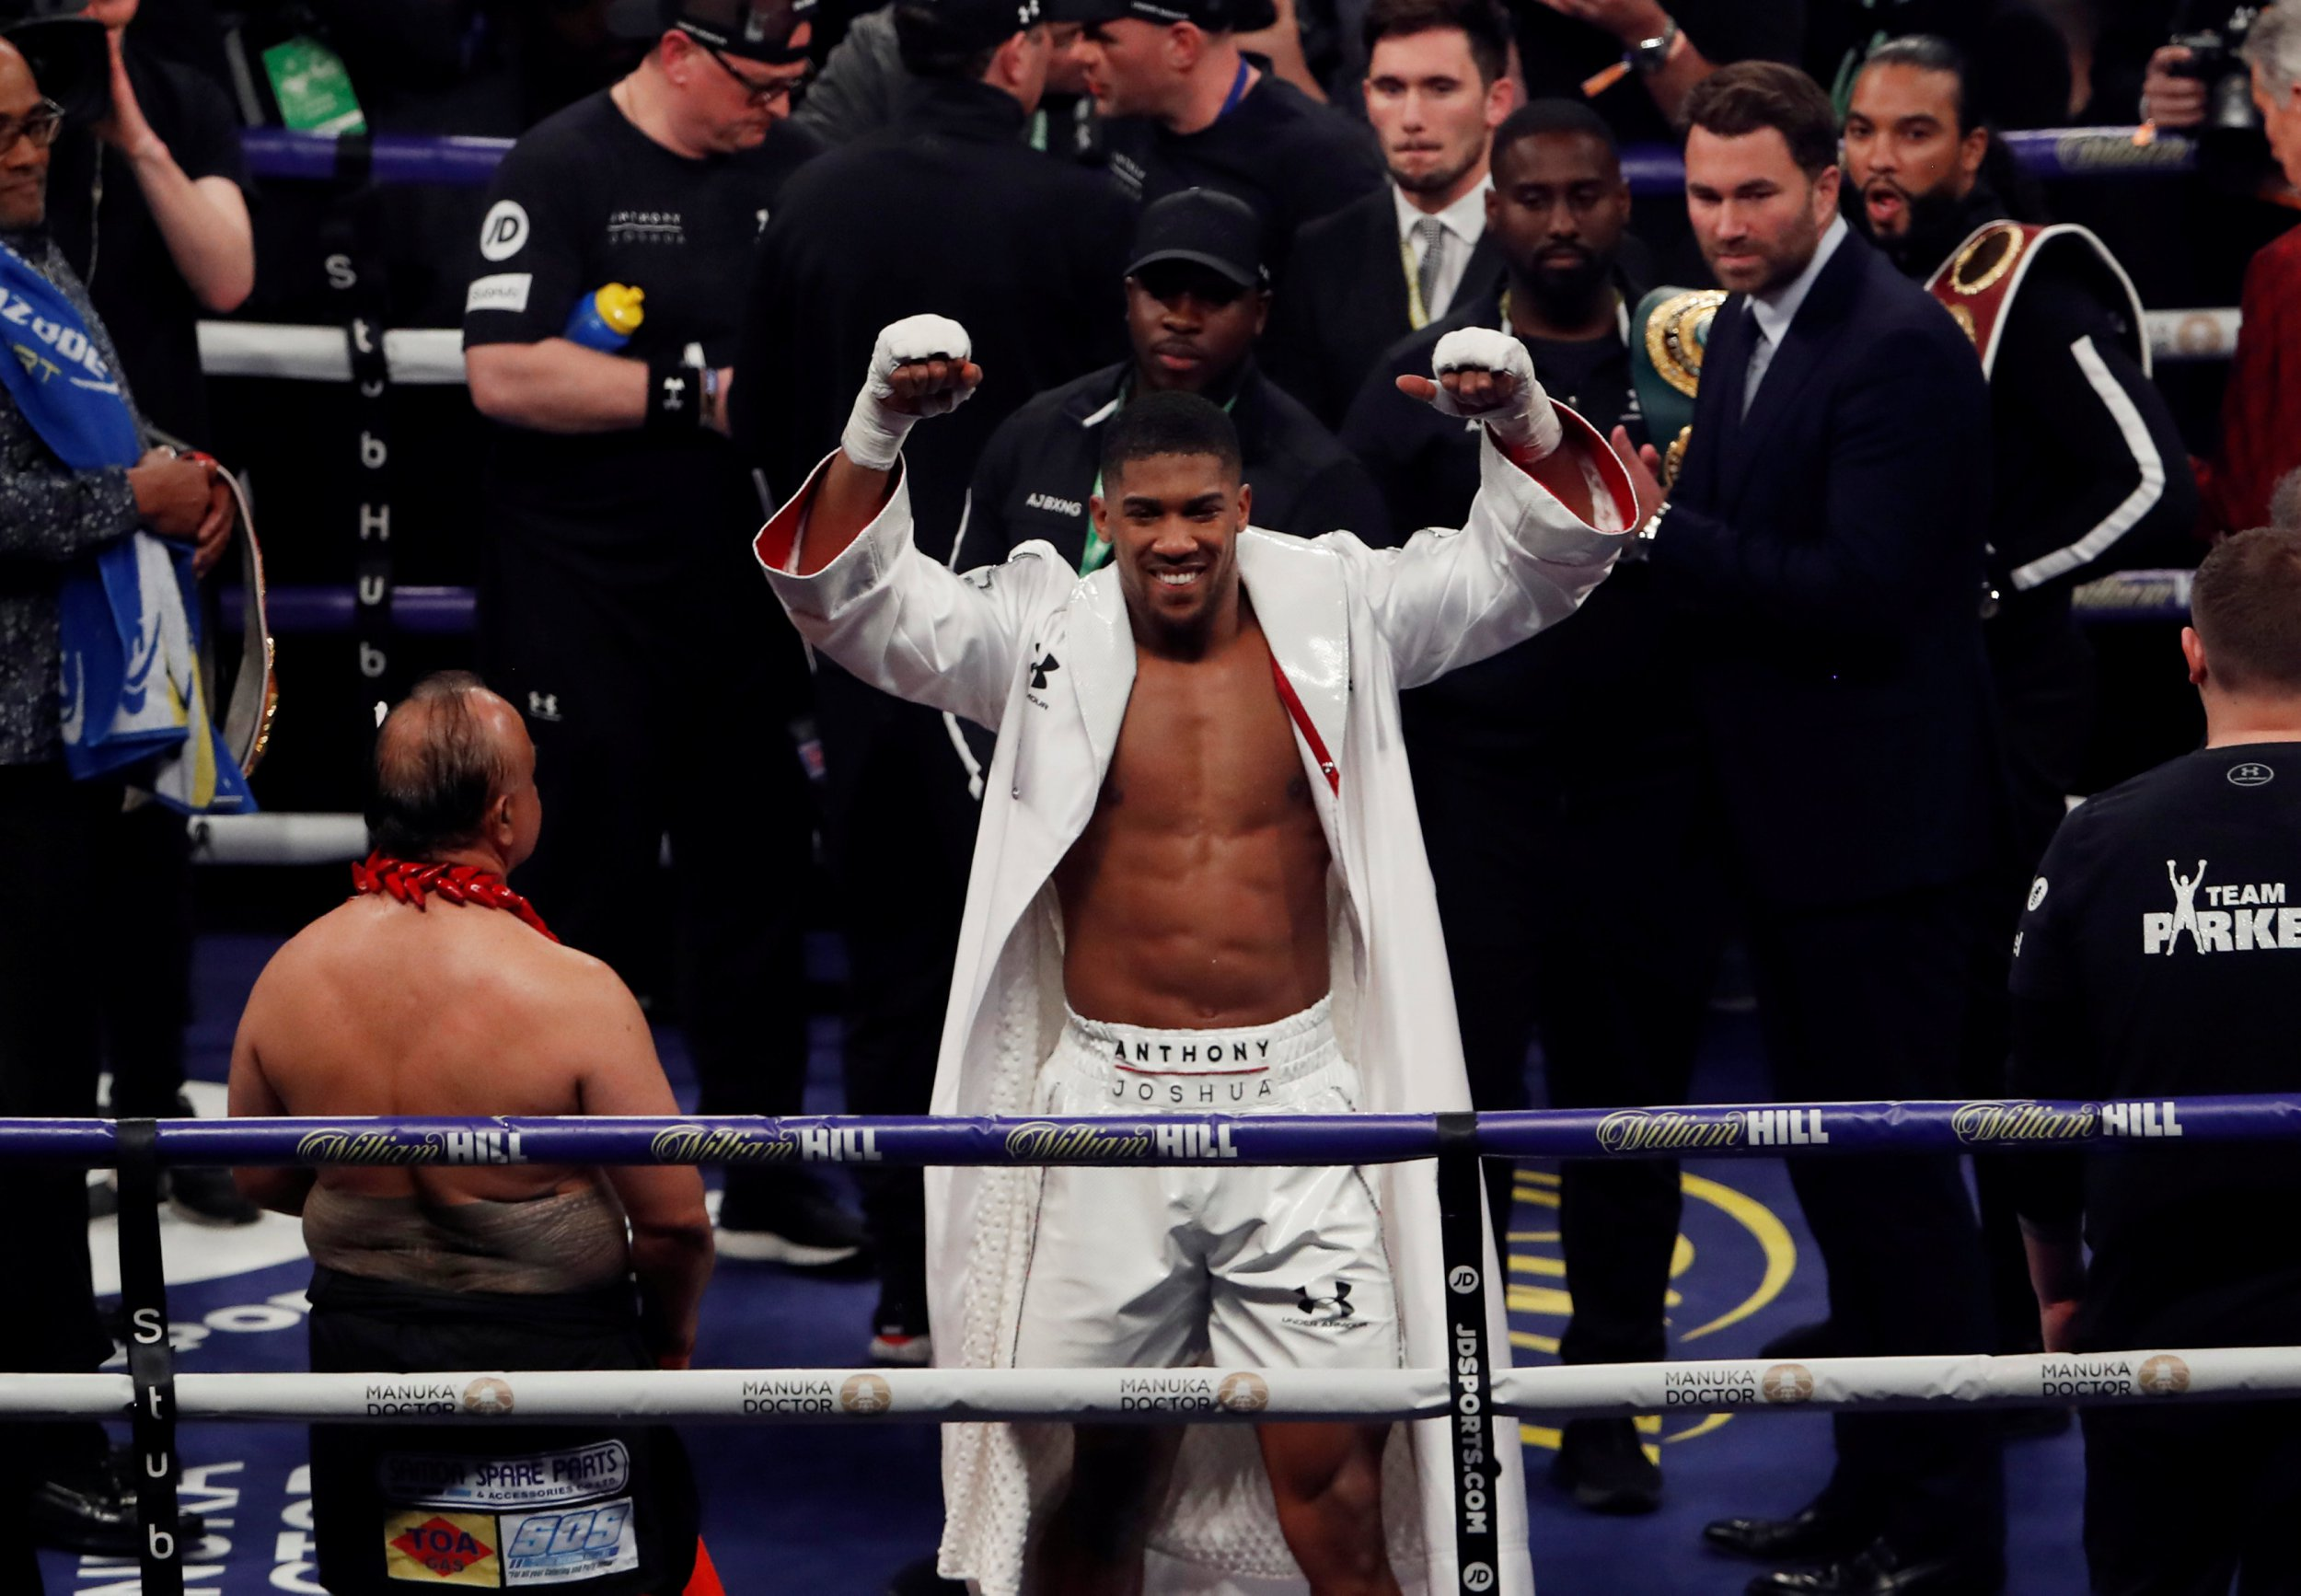 Boxing - Anthony Joshua vs Joseph Parker - World Heavyweight Title Unification Fight - Principality Stadium, Cardiff, Britain - March 31, 2018 Anthony Joshua celebrates after winning the fight Action Images via Reuters/Lee Smith